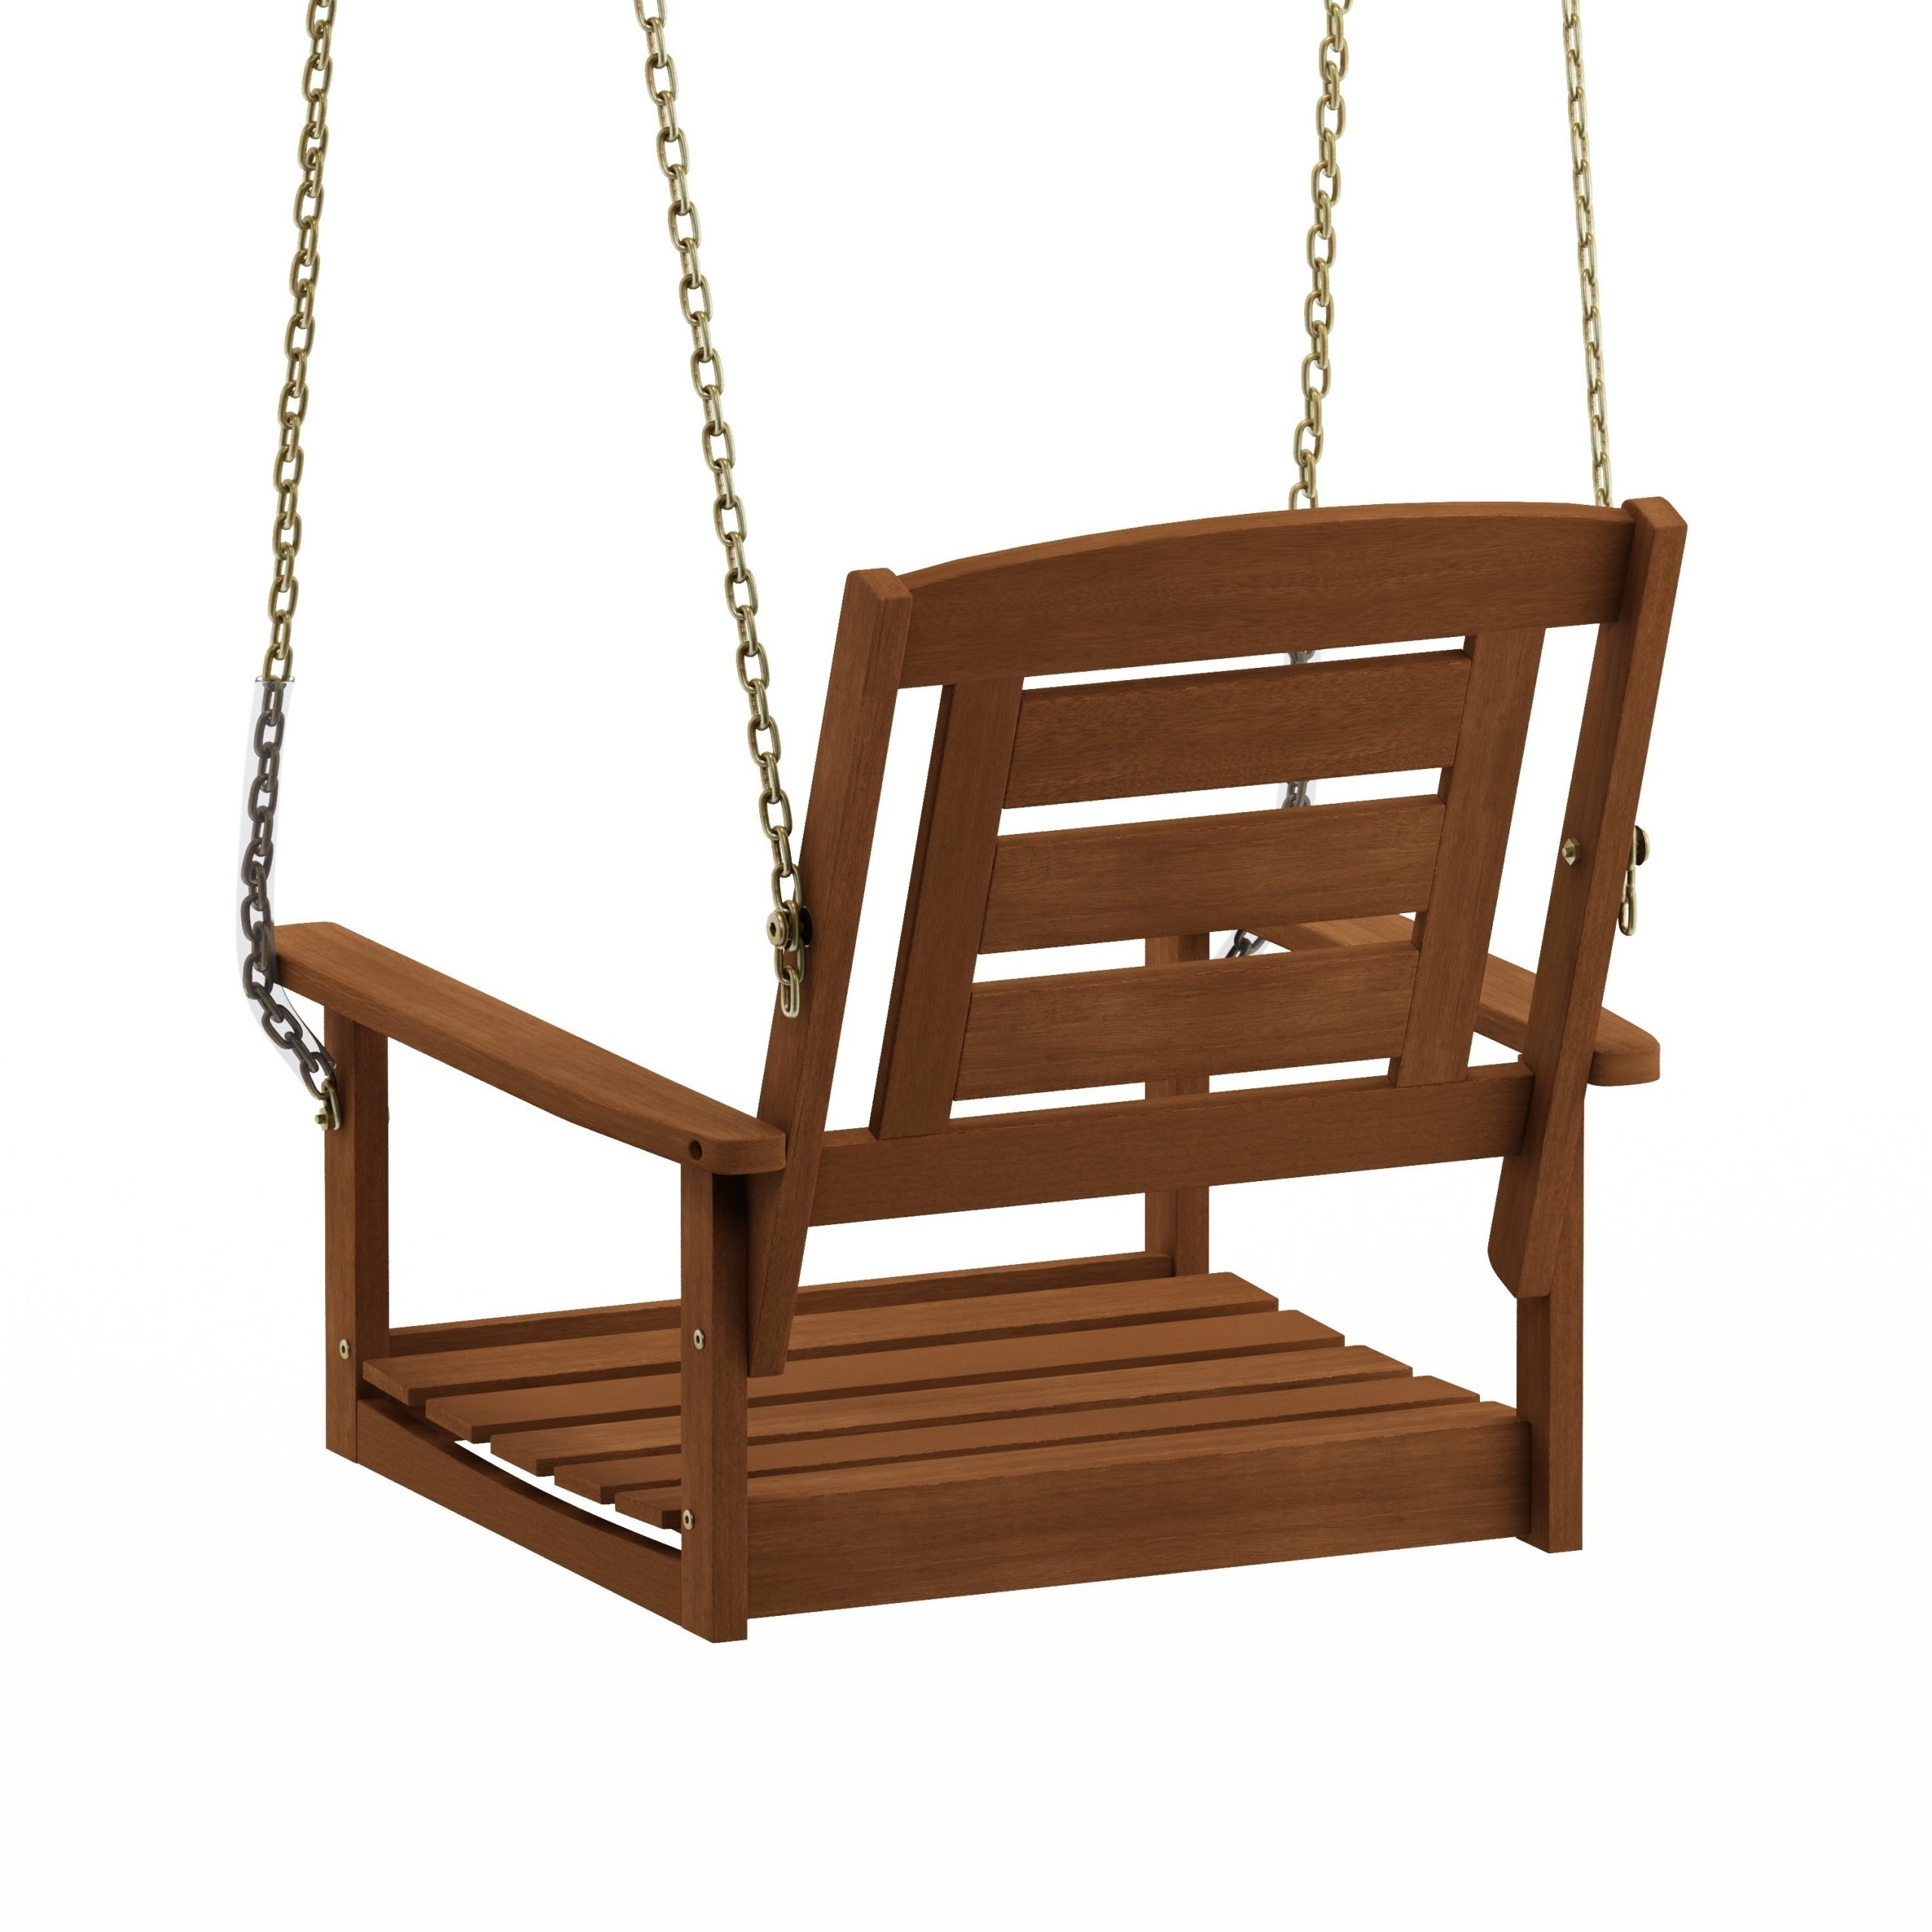 Preferred Porch Swings With Chain Regarding Havenside Home Ormond Hardwood Single Hanging Porch Swing With Chain (View 4 of 30)